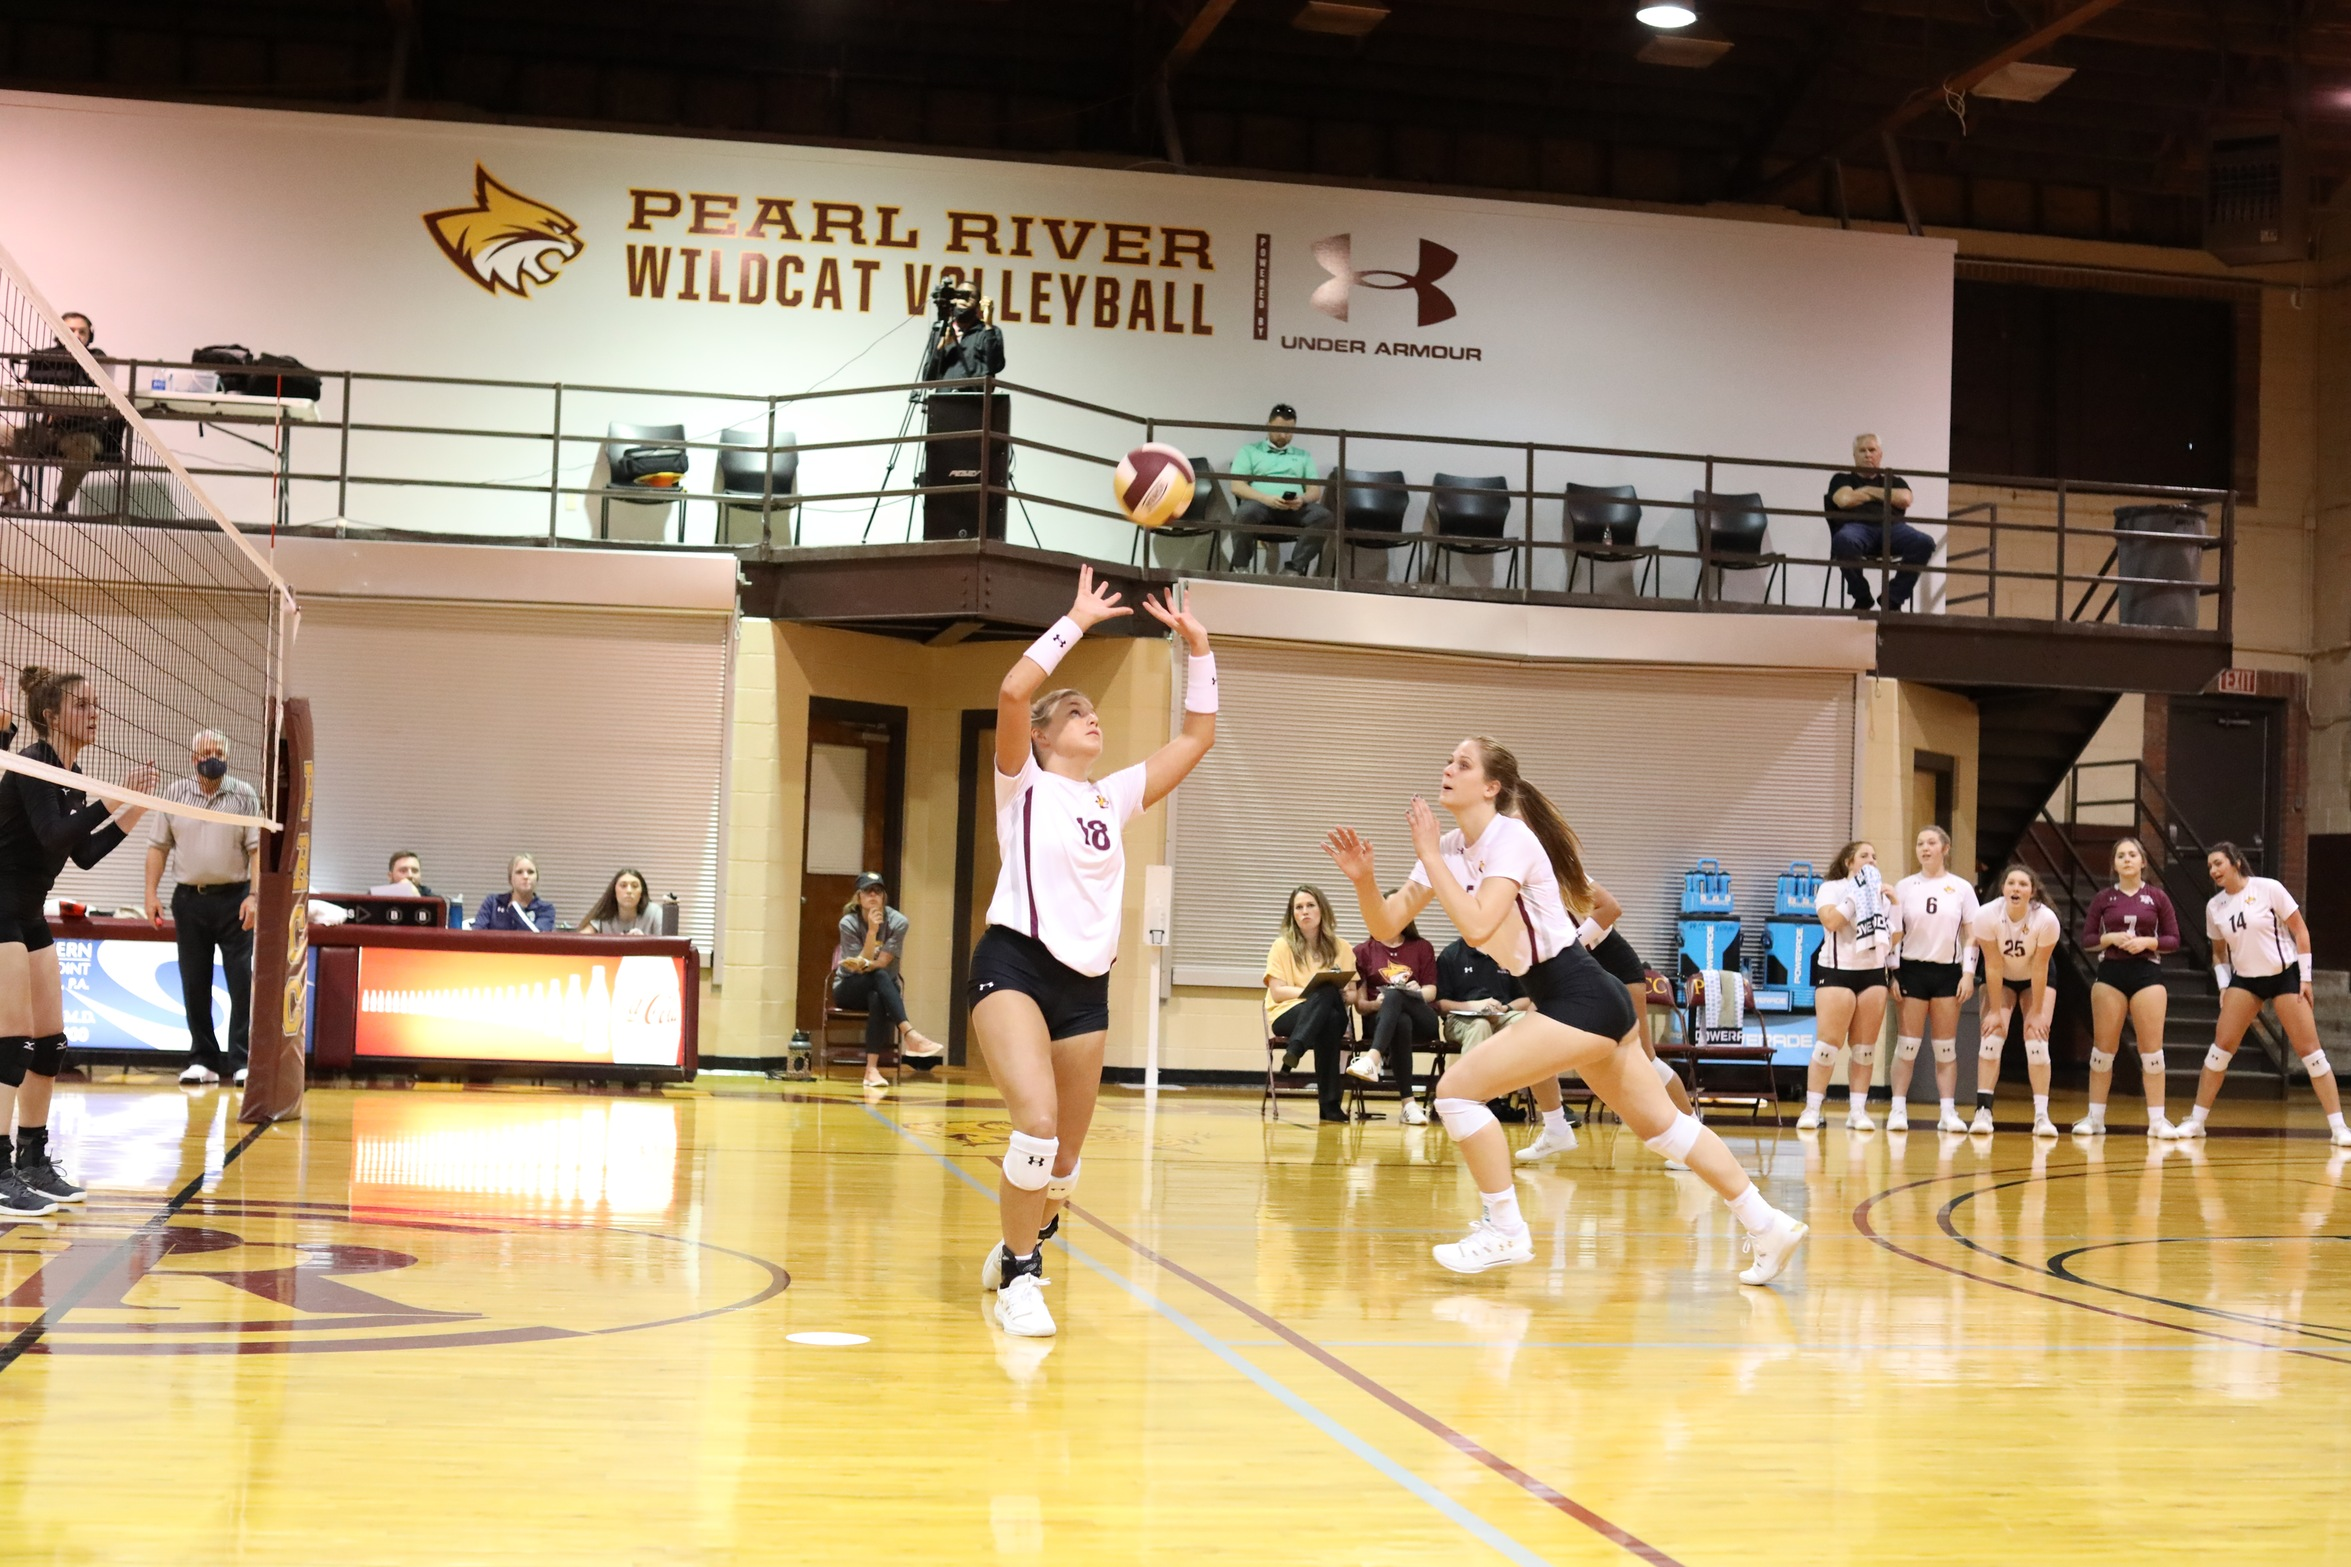 Pearl River volleyball's historic season comes to an end